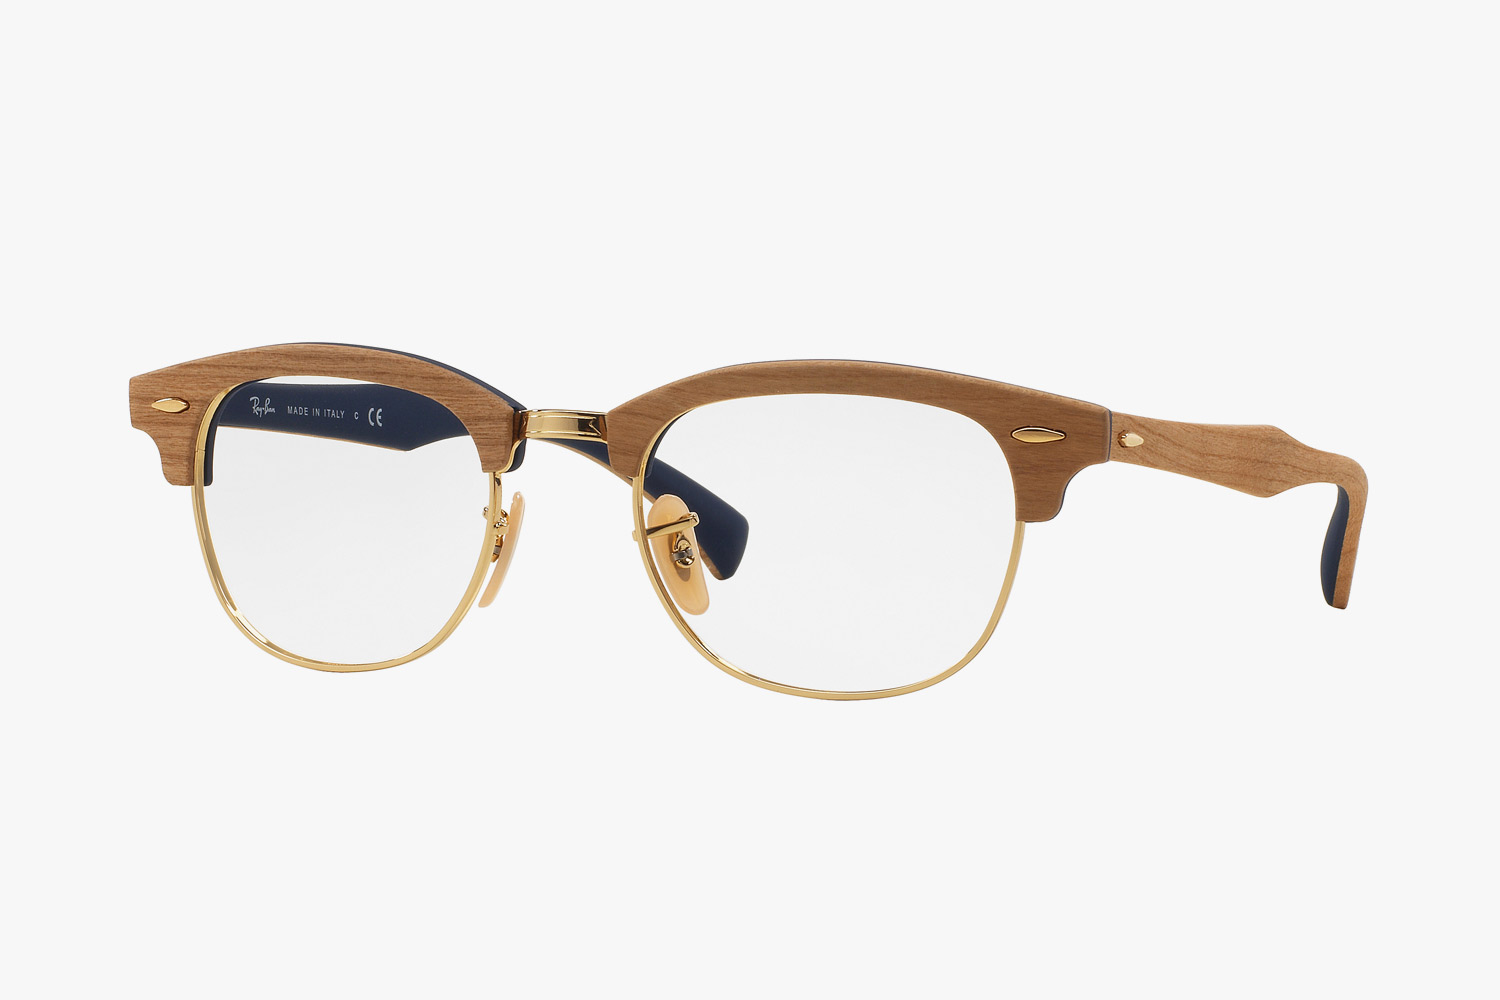 Ray-Ban-Wood-Clubmaster-Glasses-02